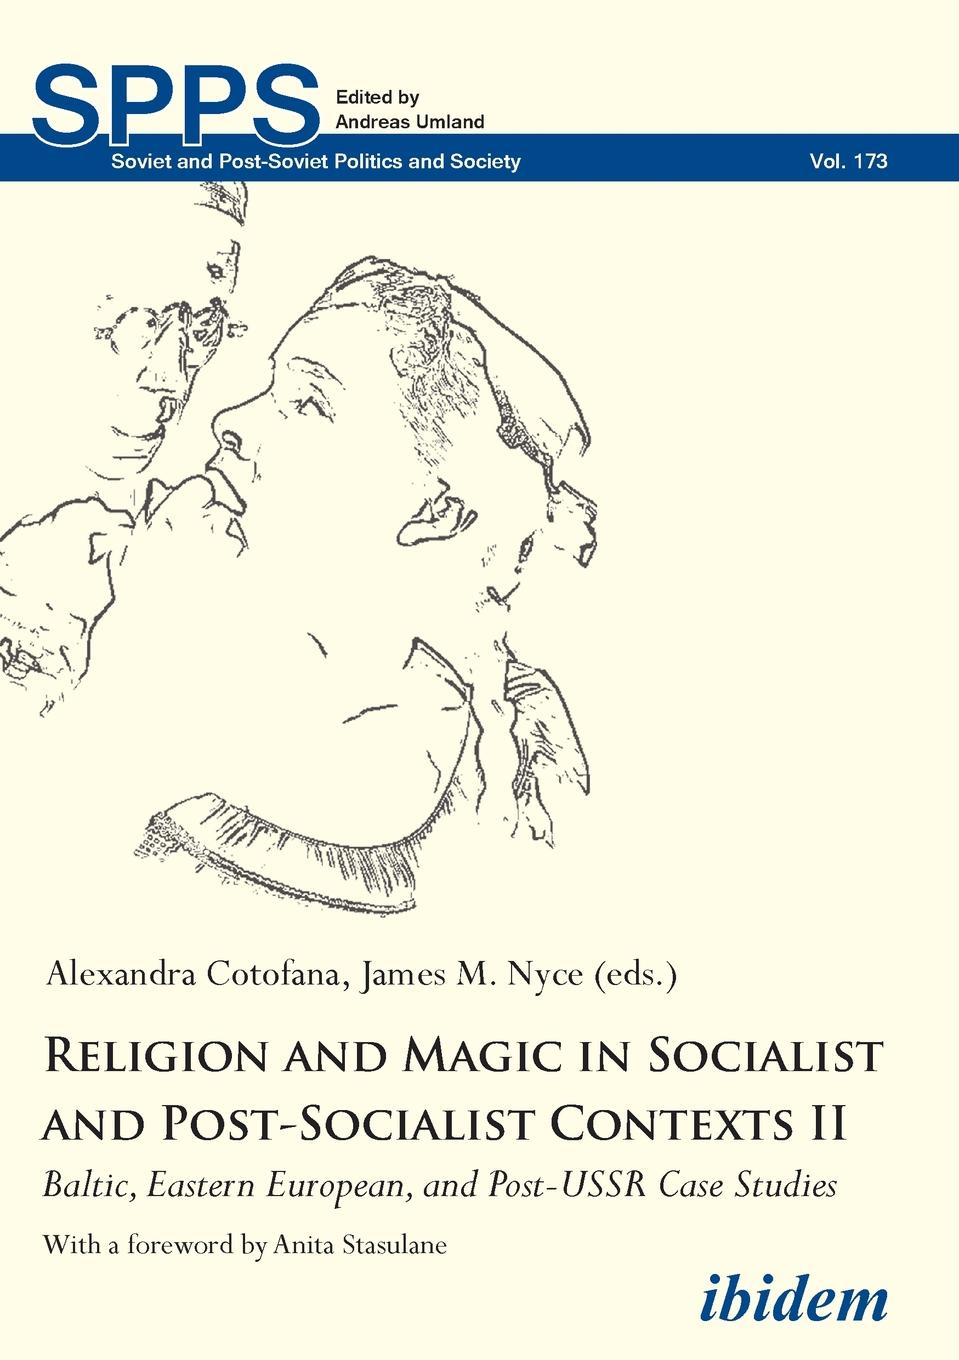 Religion and Magic in Socialist and Post-Socialist Contexts II. Baltic, Eastern European, and Post-USSR Case Studies цена 2017